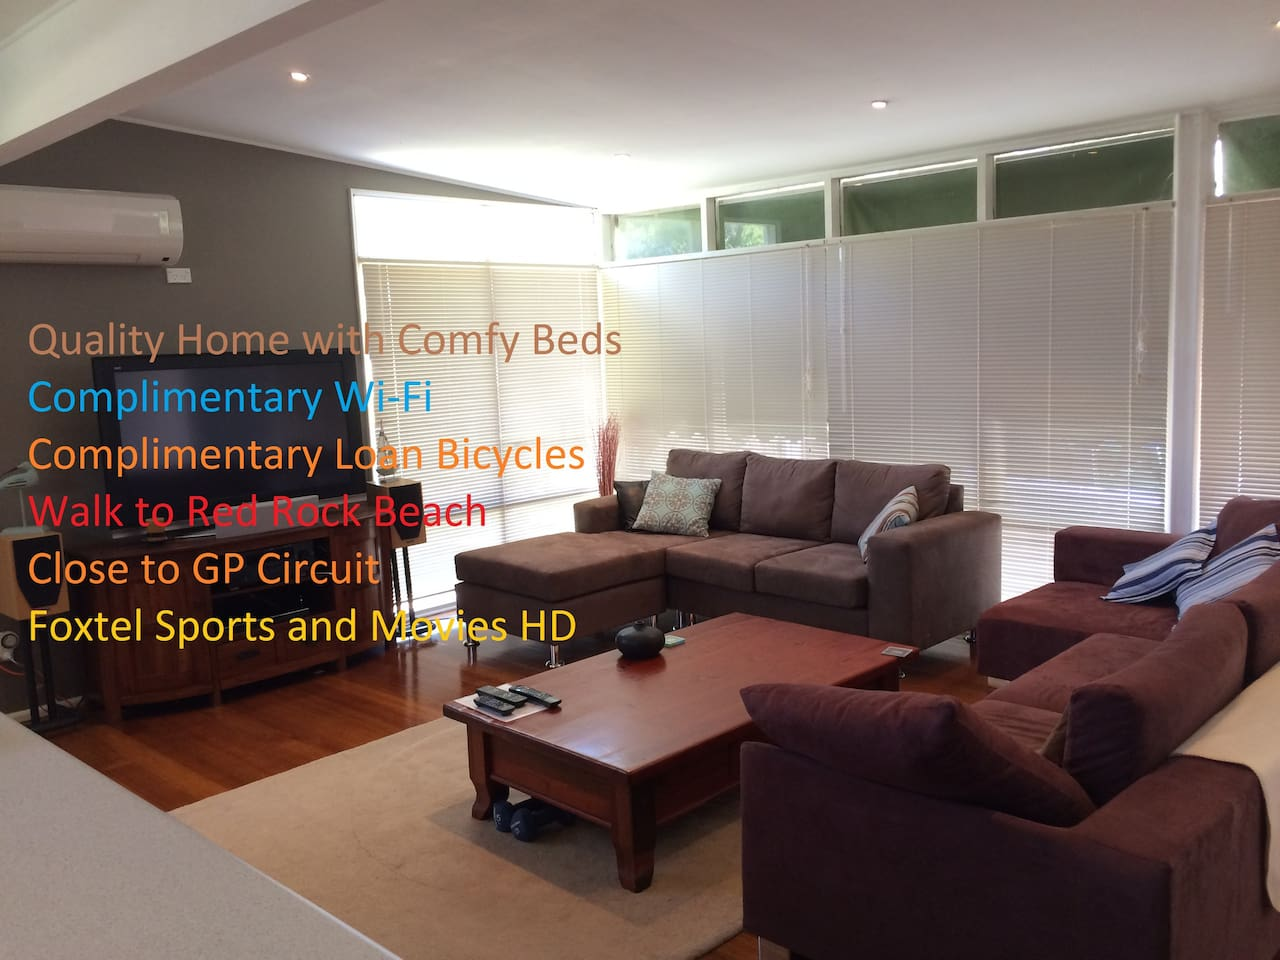 Spacious Lounge with Smart TV, good sound system and BD player